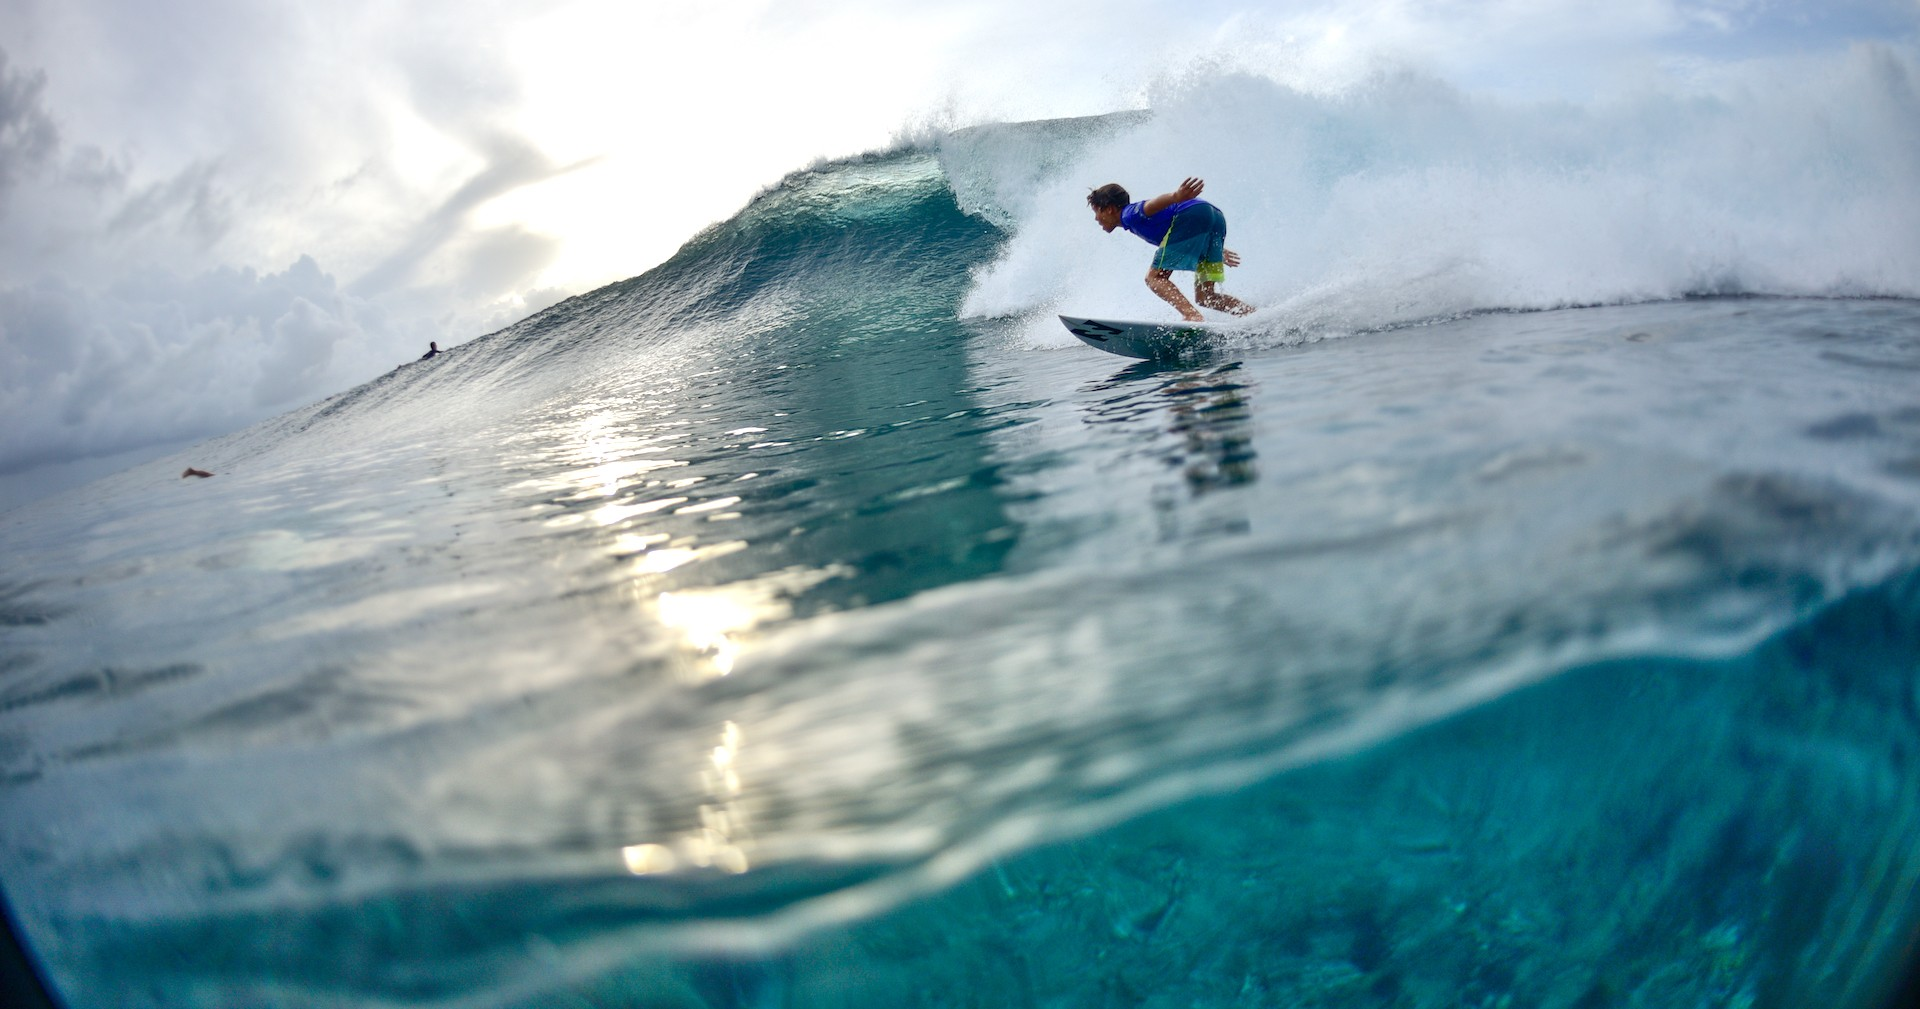 João Mendonça is surfing his favourite custom surfboard the Grom at a boat trip on the Maldives.